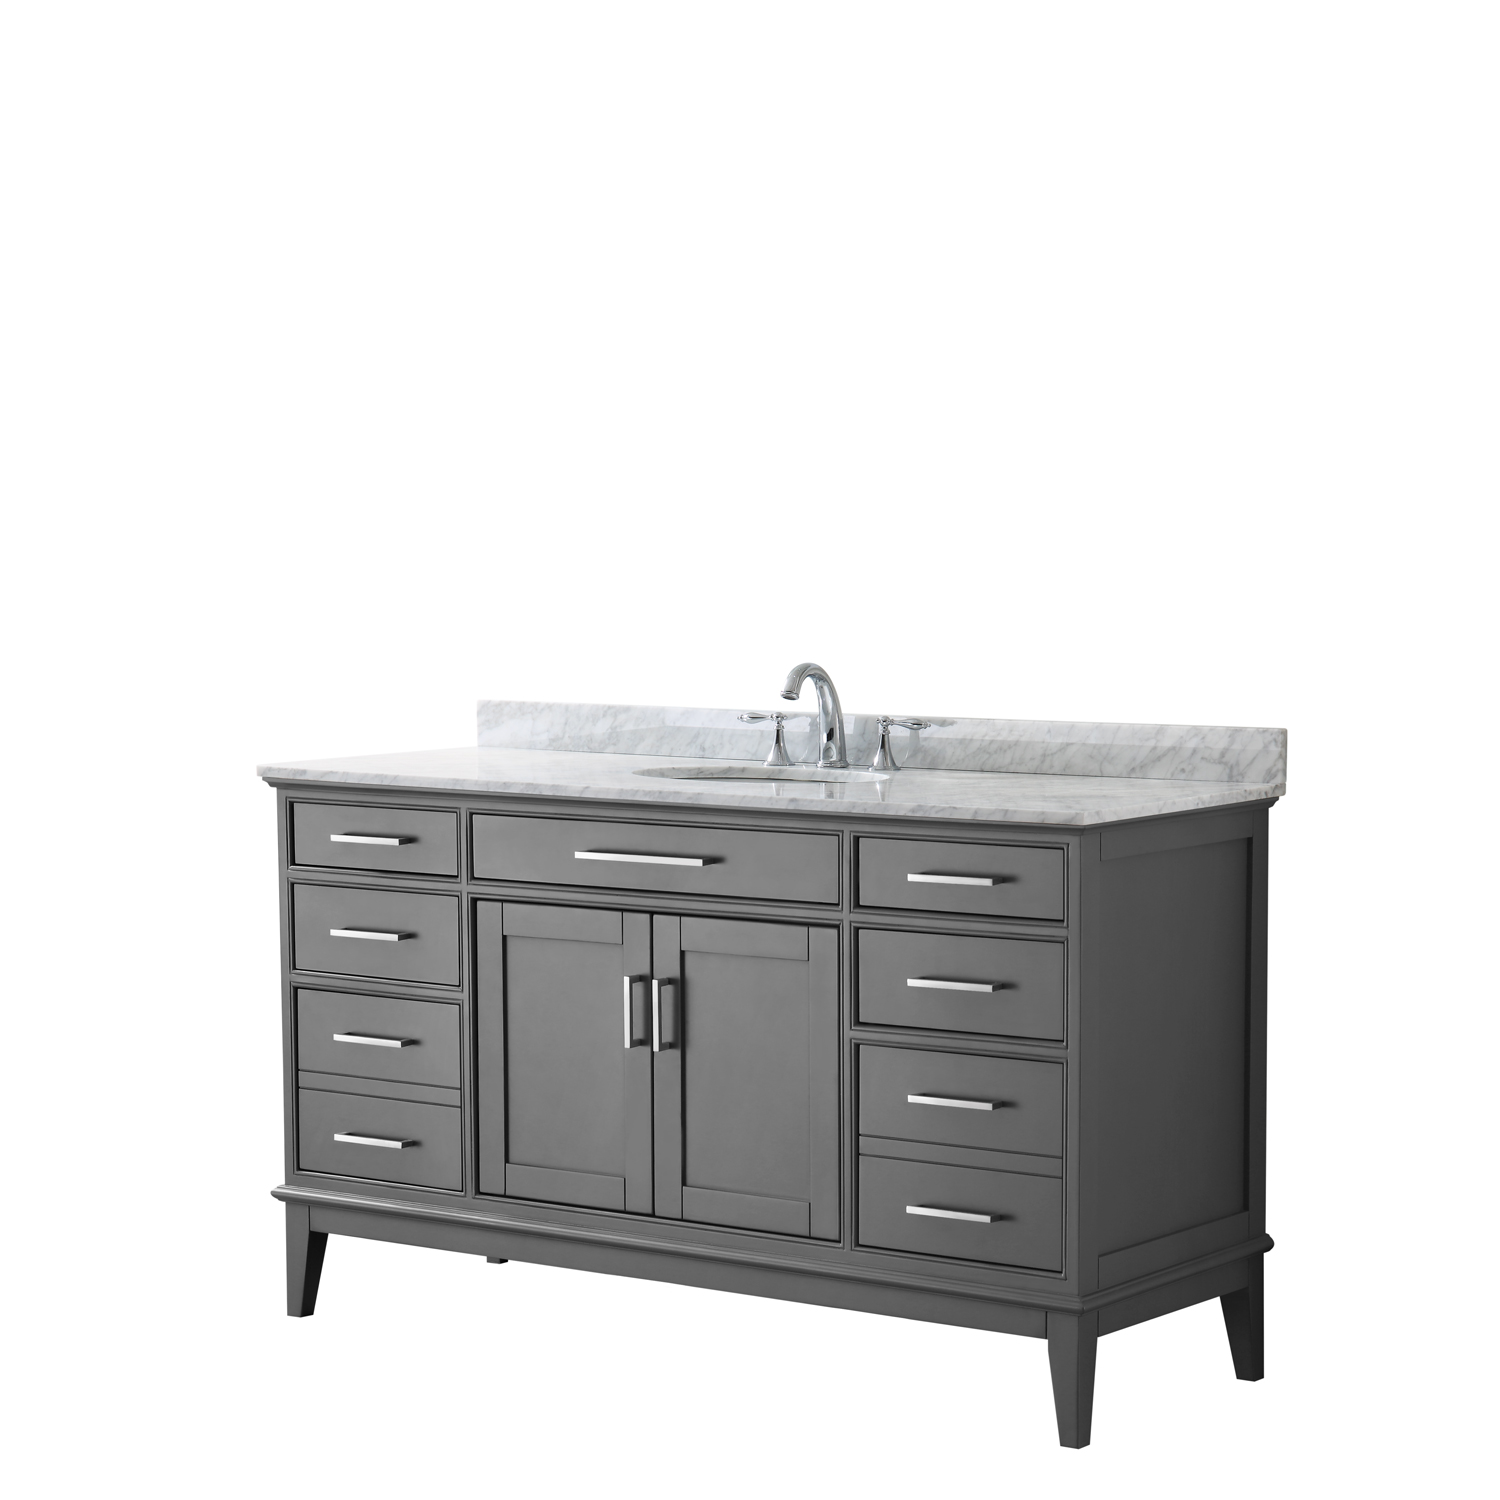 "Contemporary 60"" Single Bathroom Vanity in Dark Gray, White Carrara Marble Countertop with Undermount Sink, and Mirror"